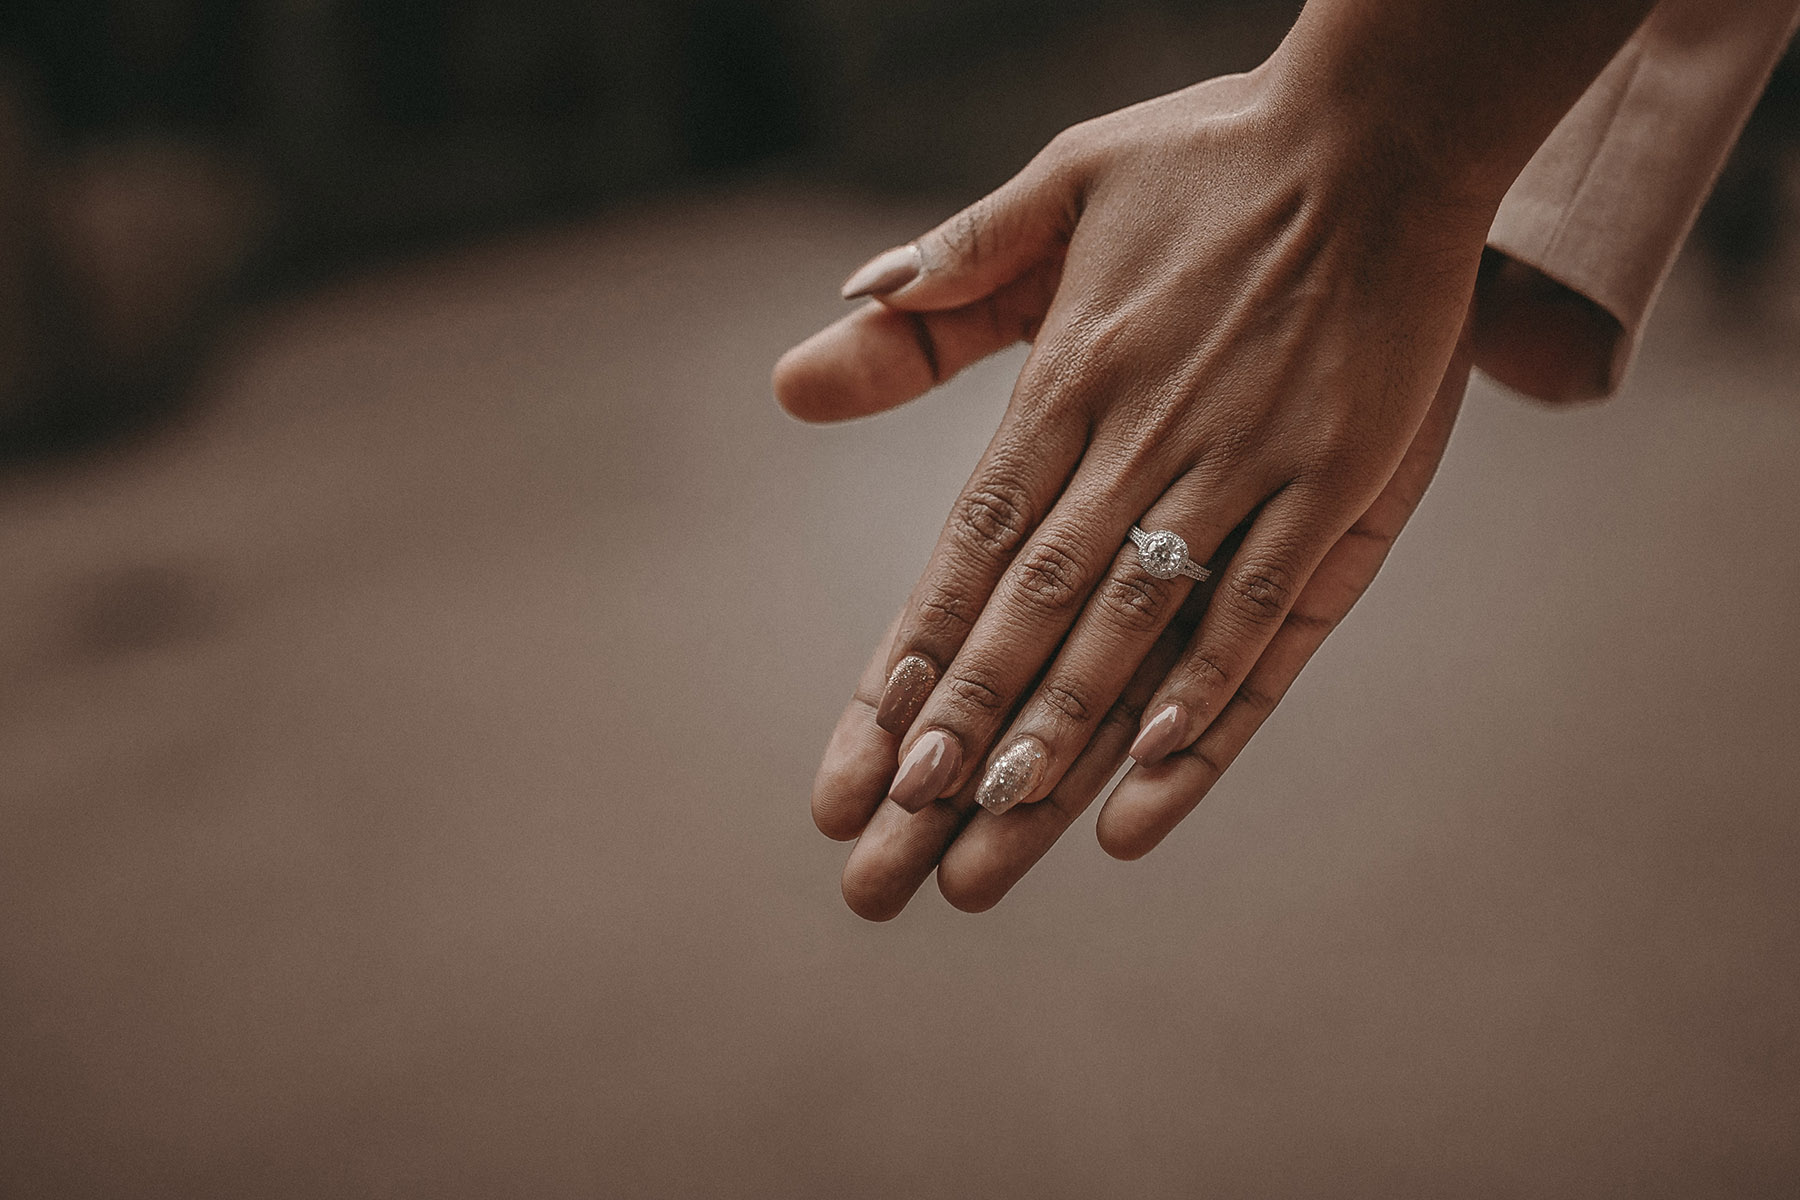 Couple showing off diamond engagement ring